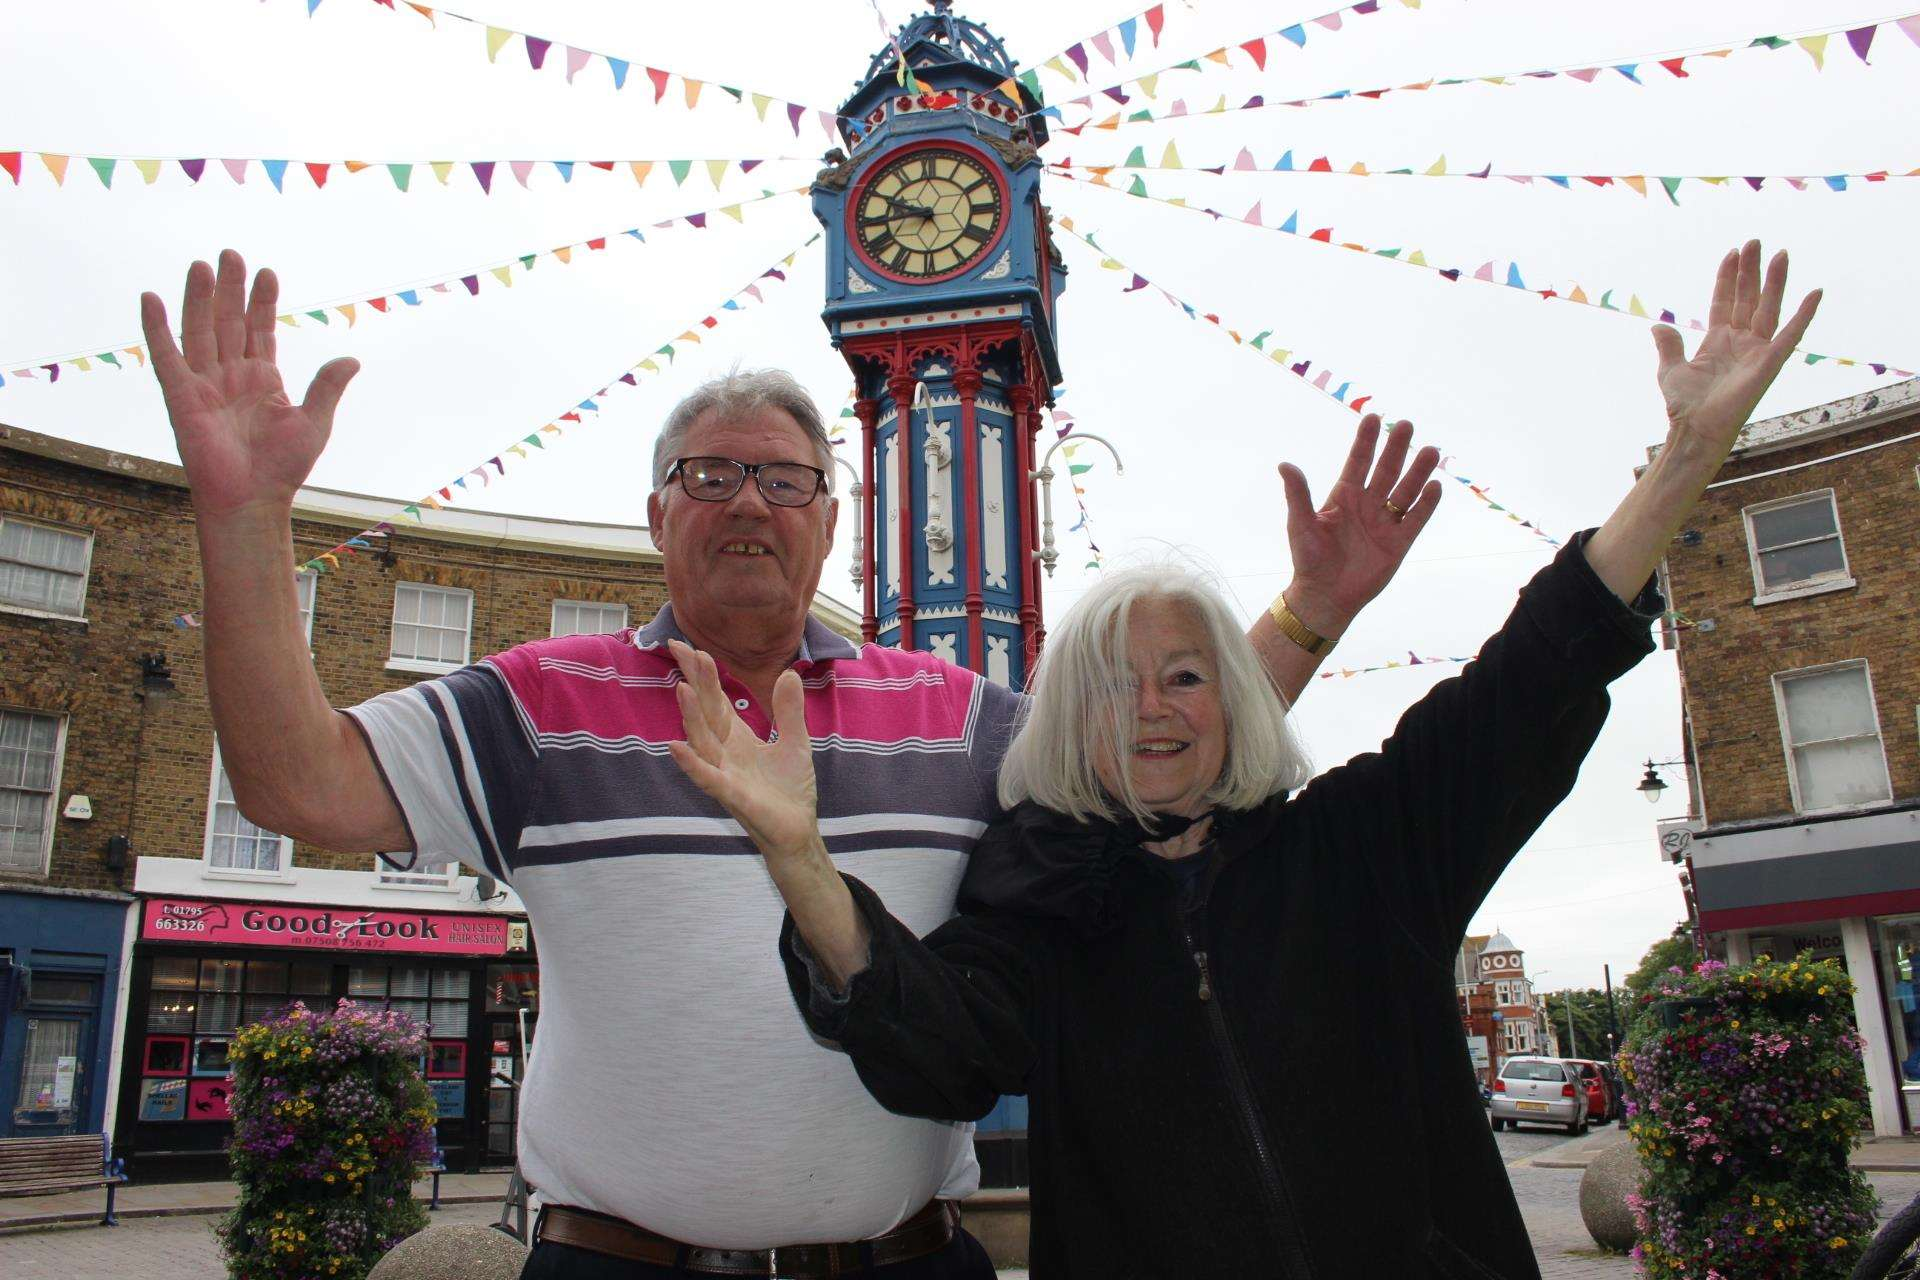 Jubilant: Campaigners Brian Spoor and Lana Henderson celebrate the go-ahead for a Sheerness town council